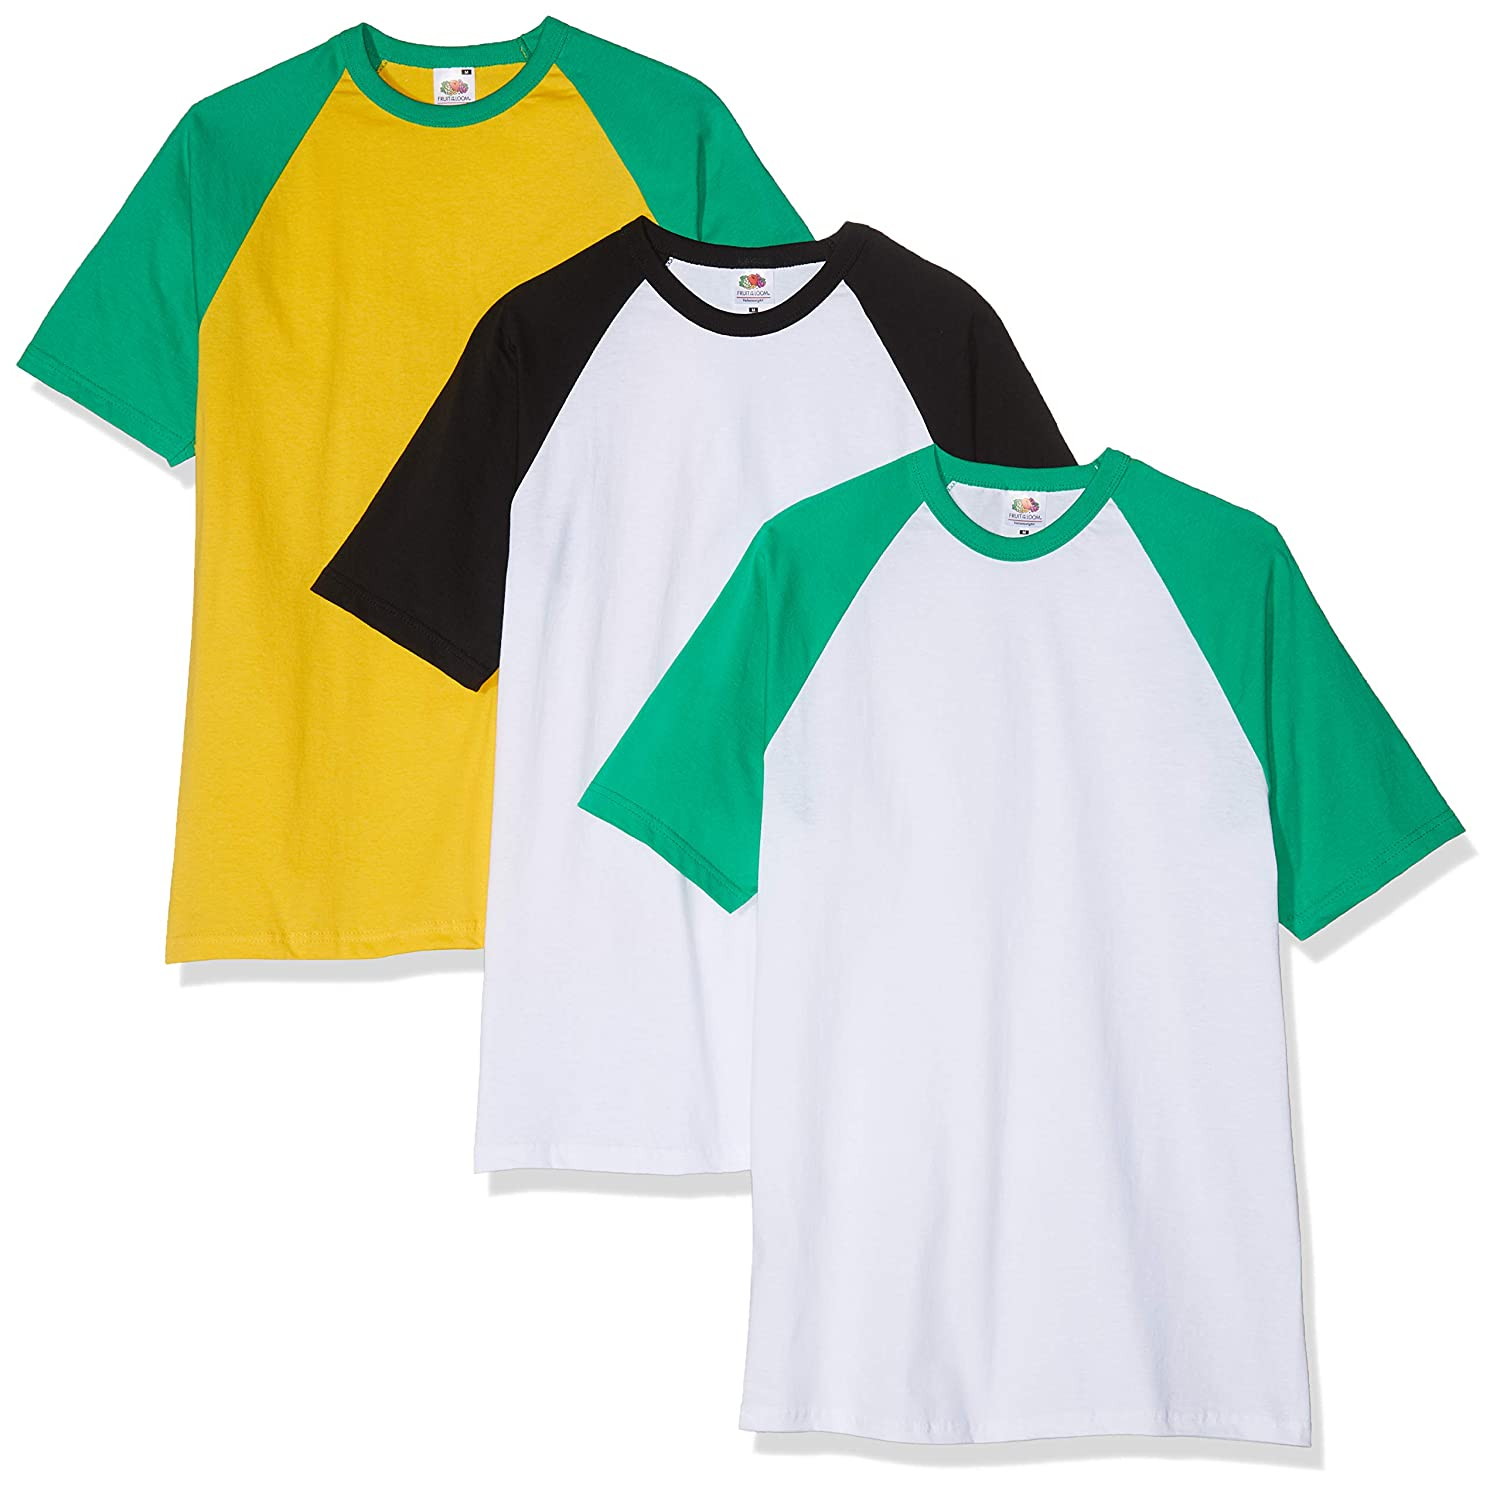 3-Pack Or 5-Pack Fruit of the Loom Men/'s 100/% Cotton Contrast Ringer T-Shirt New